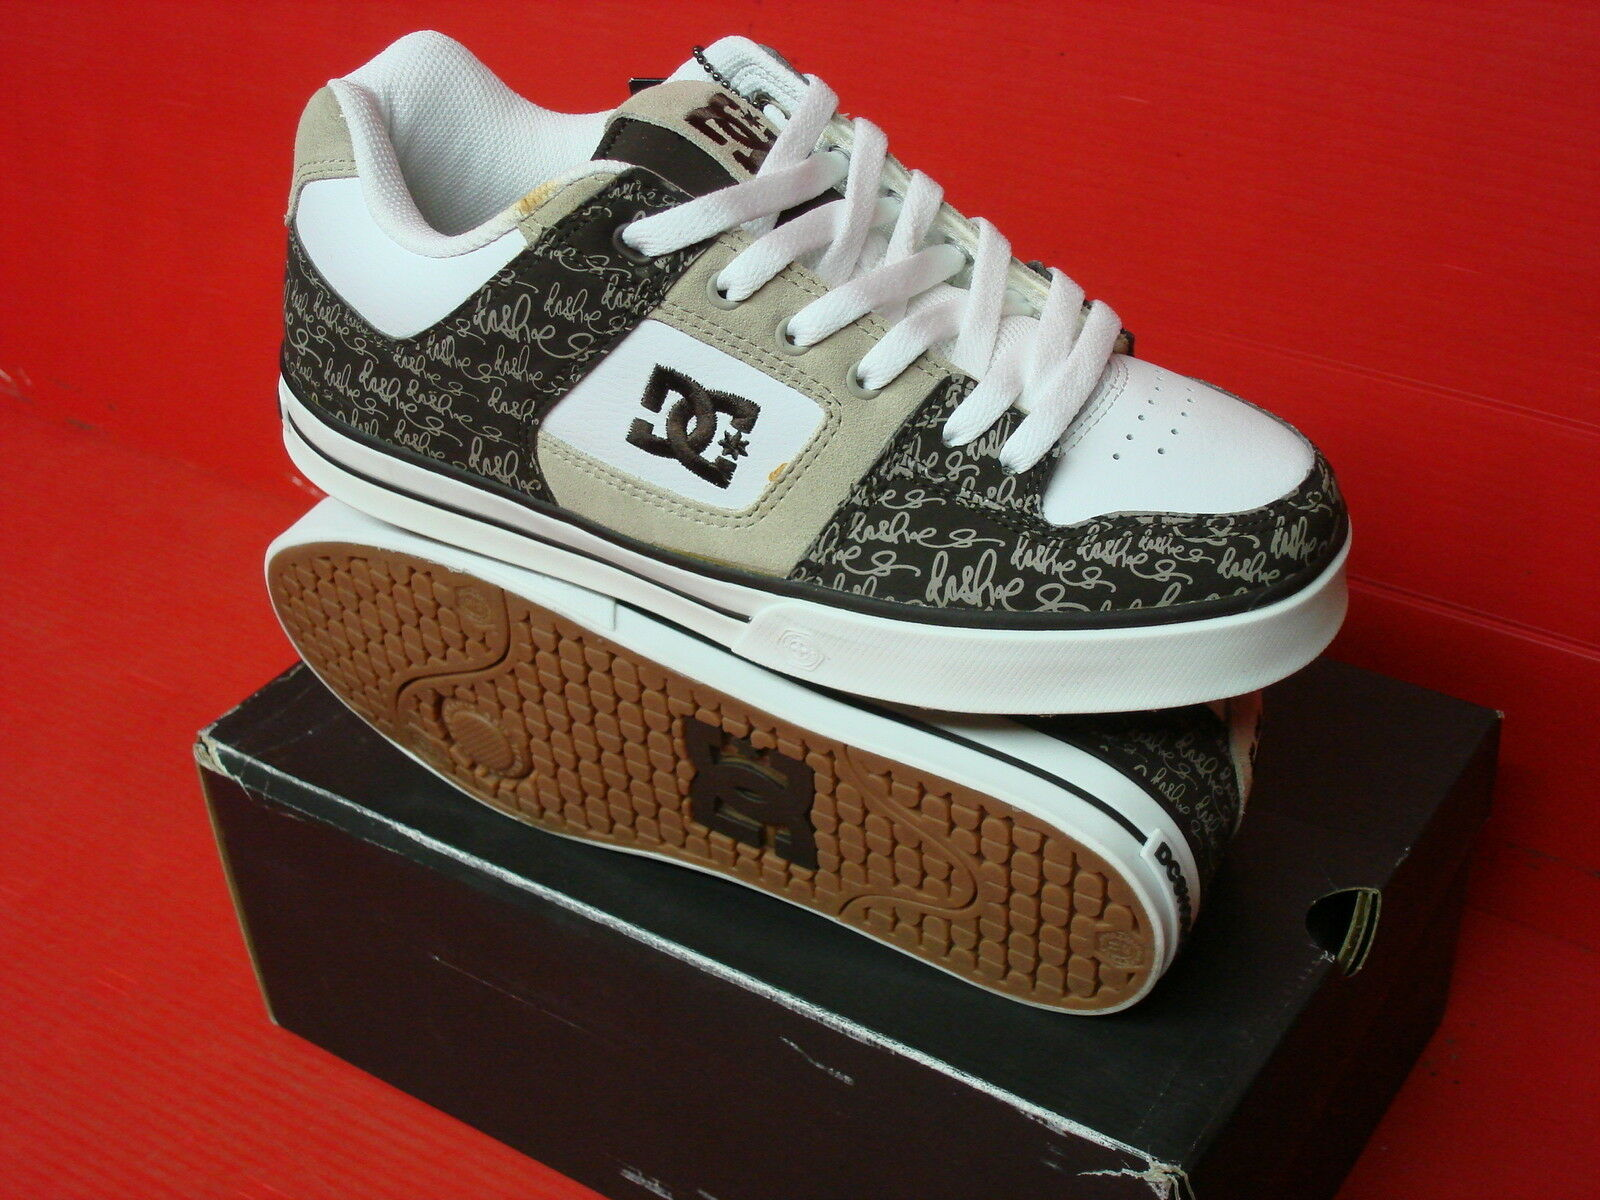 DC SHOES PURE XE MENS SKATEBOARD 301722